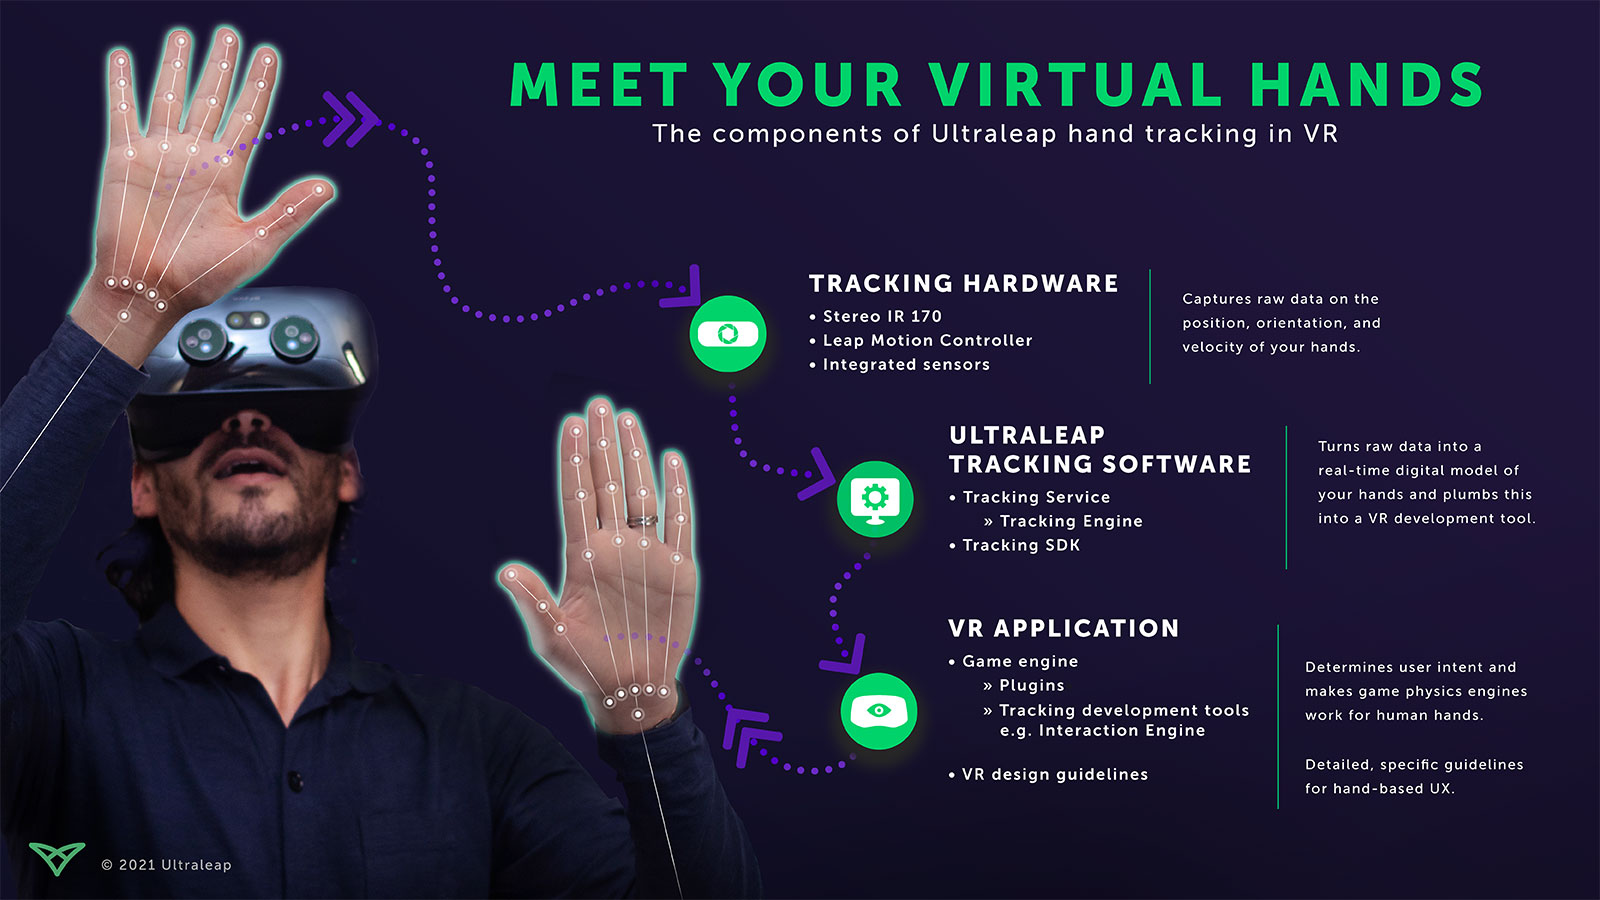 Ultraleap hand tracking in vr infographic